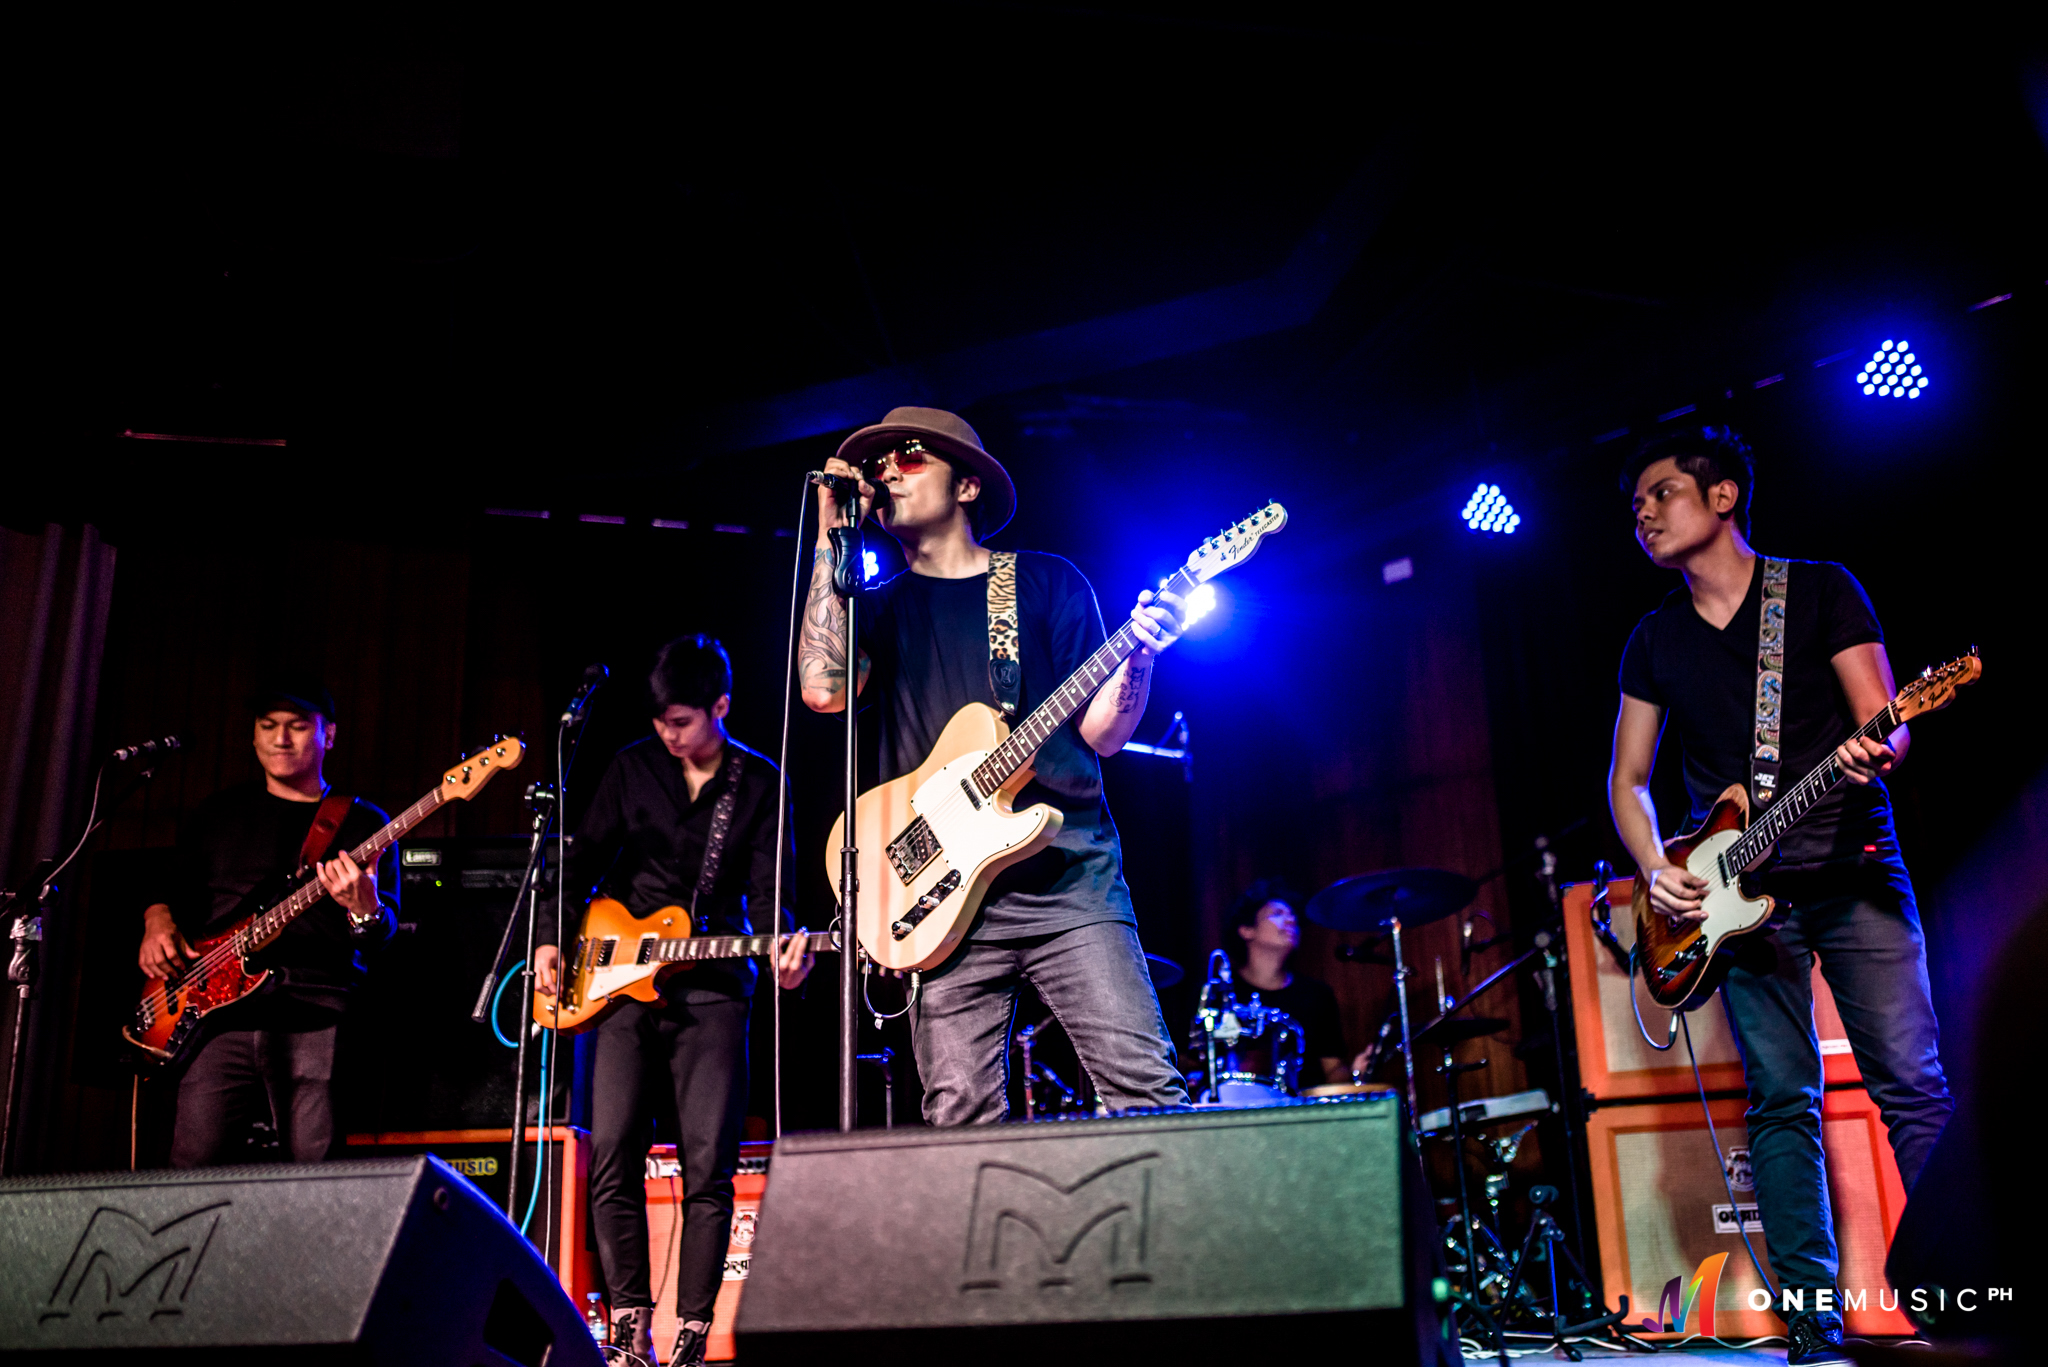 Callalily at +Cause Benefit Gig